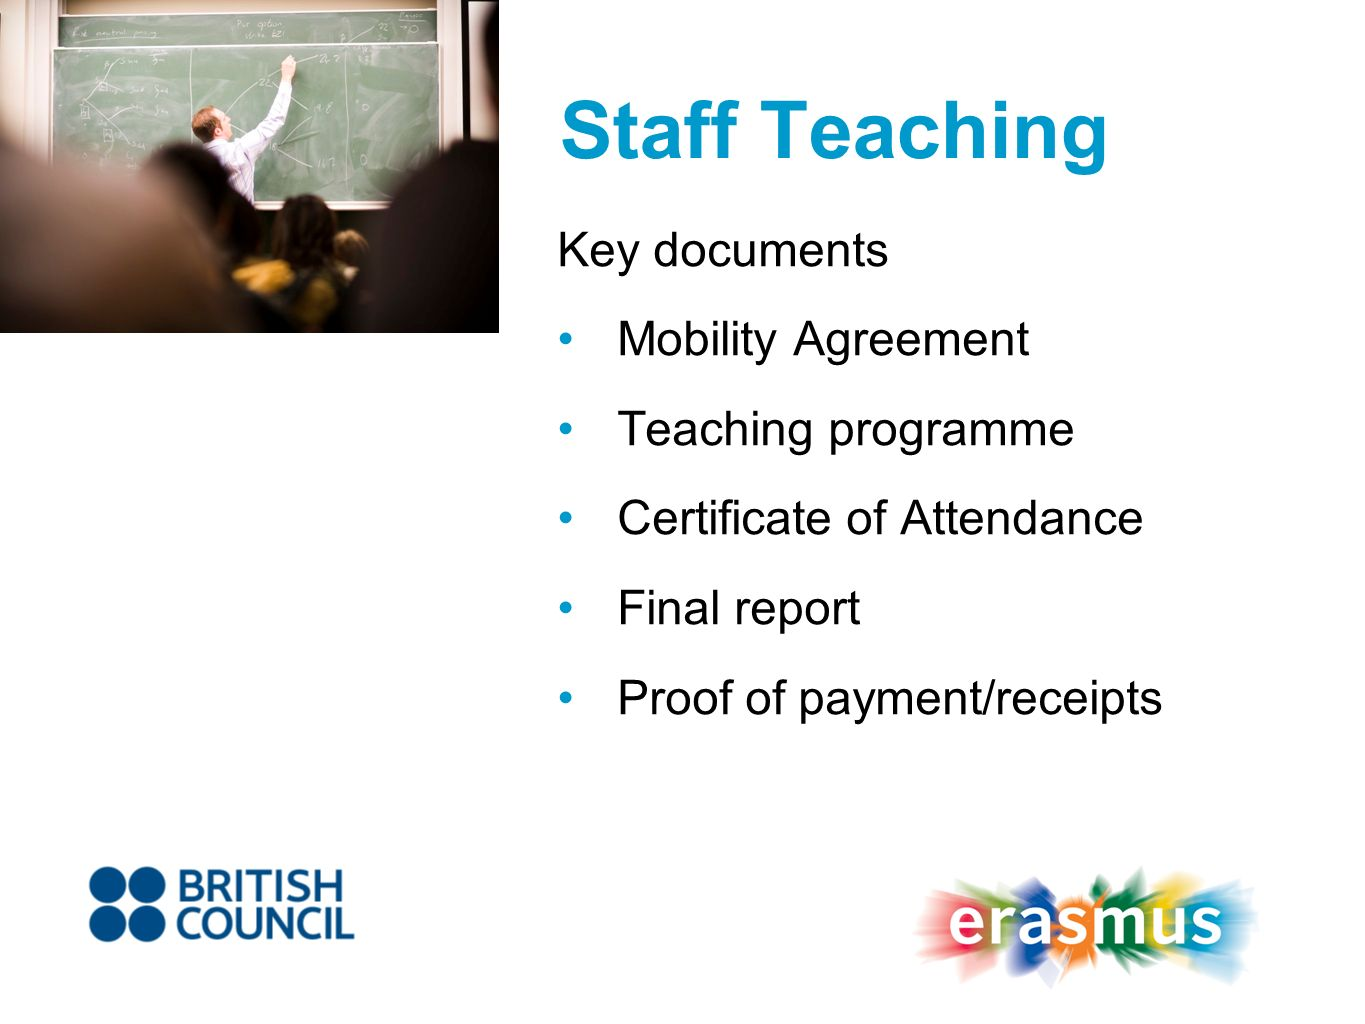 Staff Teaching Key documents Mobility Agreement Teaching programme Certificate of Attendance Final report Proof of payment/receipts